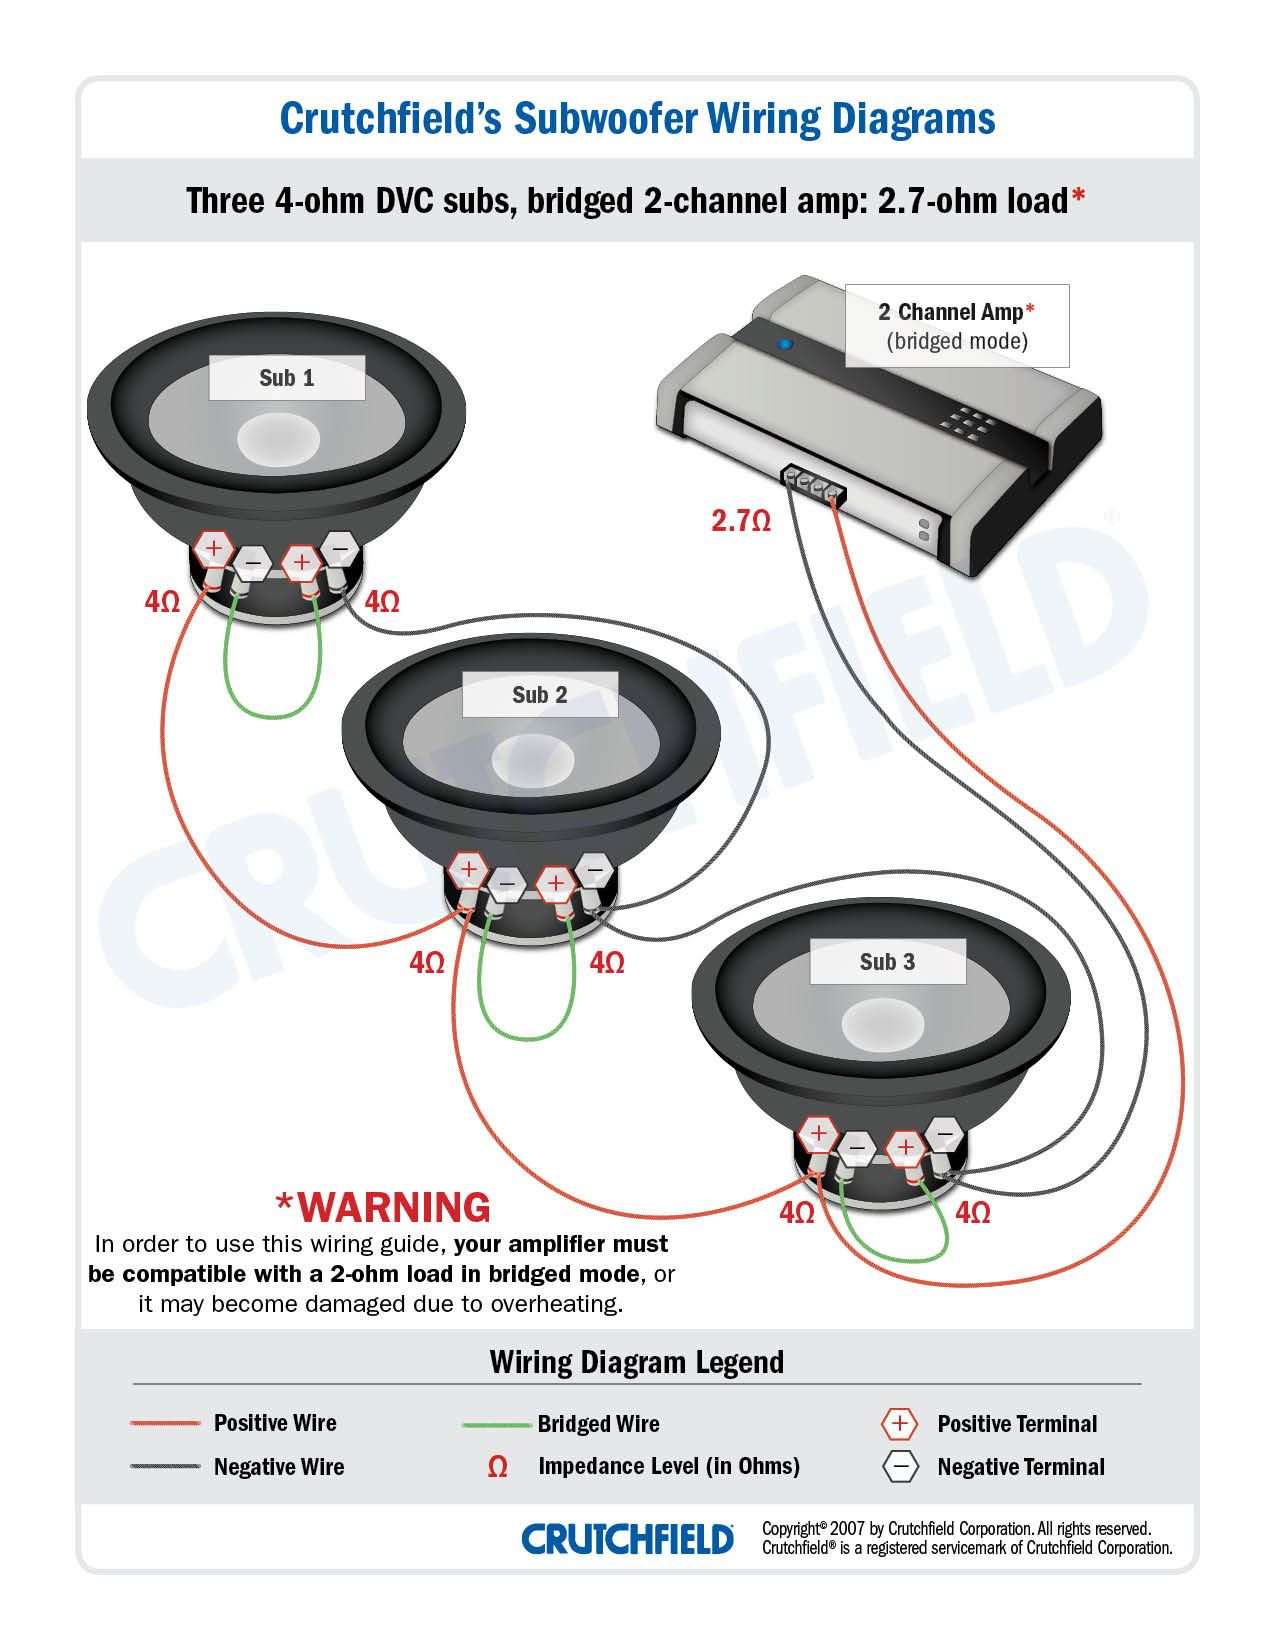 Subwoofer 2 Channel Amp Wiring Diagram from i.pinimg.com